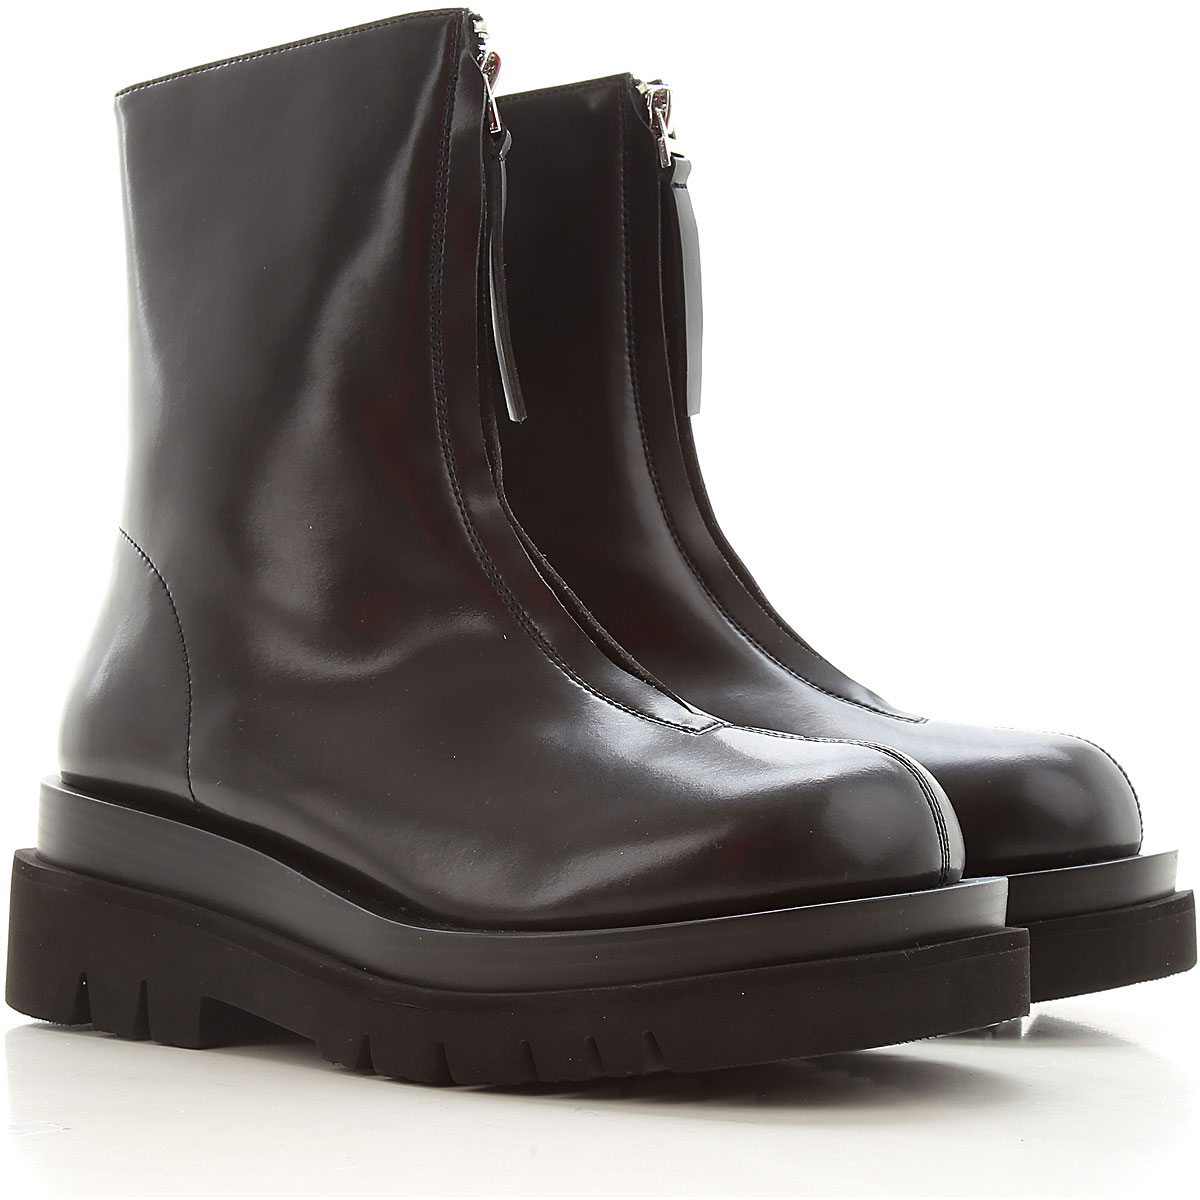 Jeffrey Campbell Boots For Women, Booties, Black, Leather, 2021, 3.5 6.5